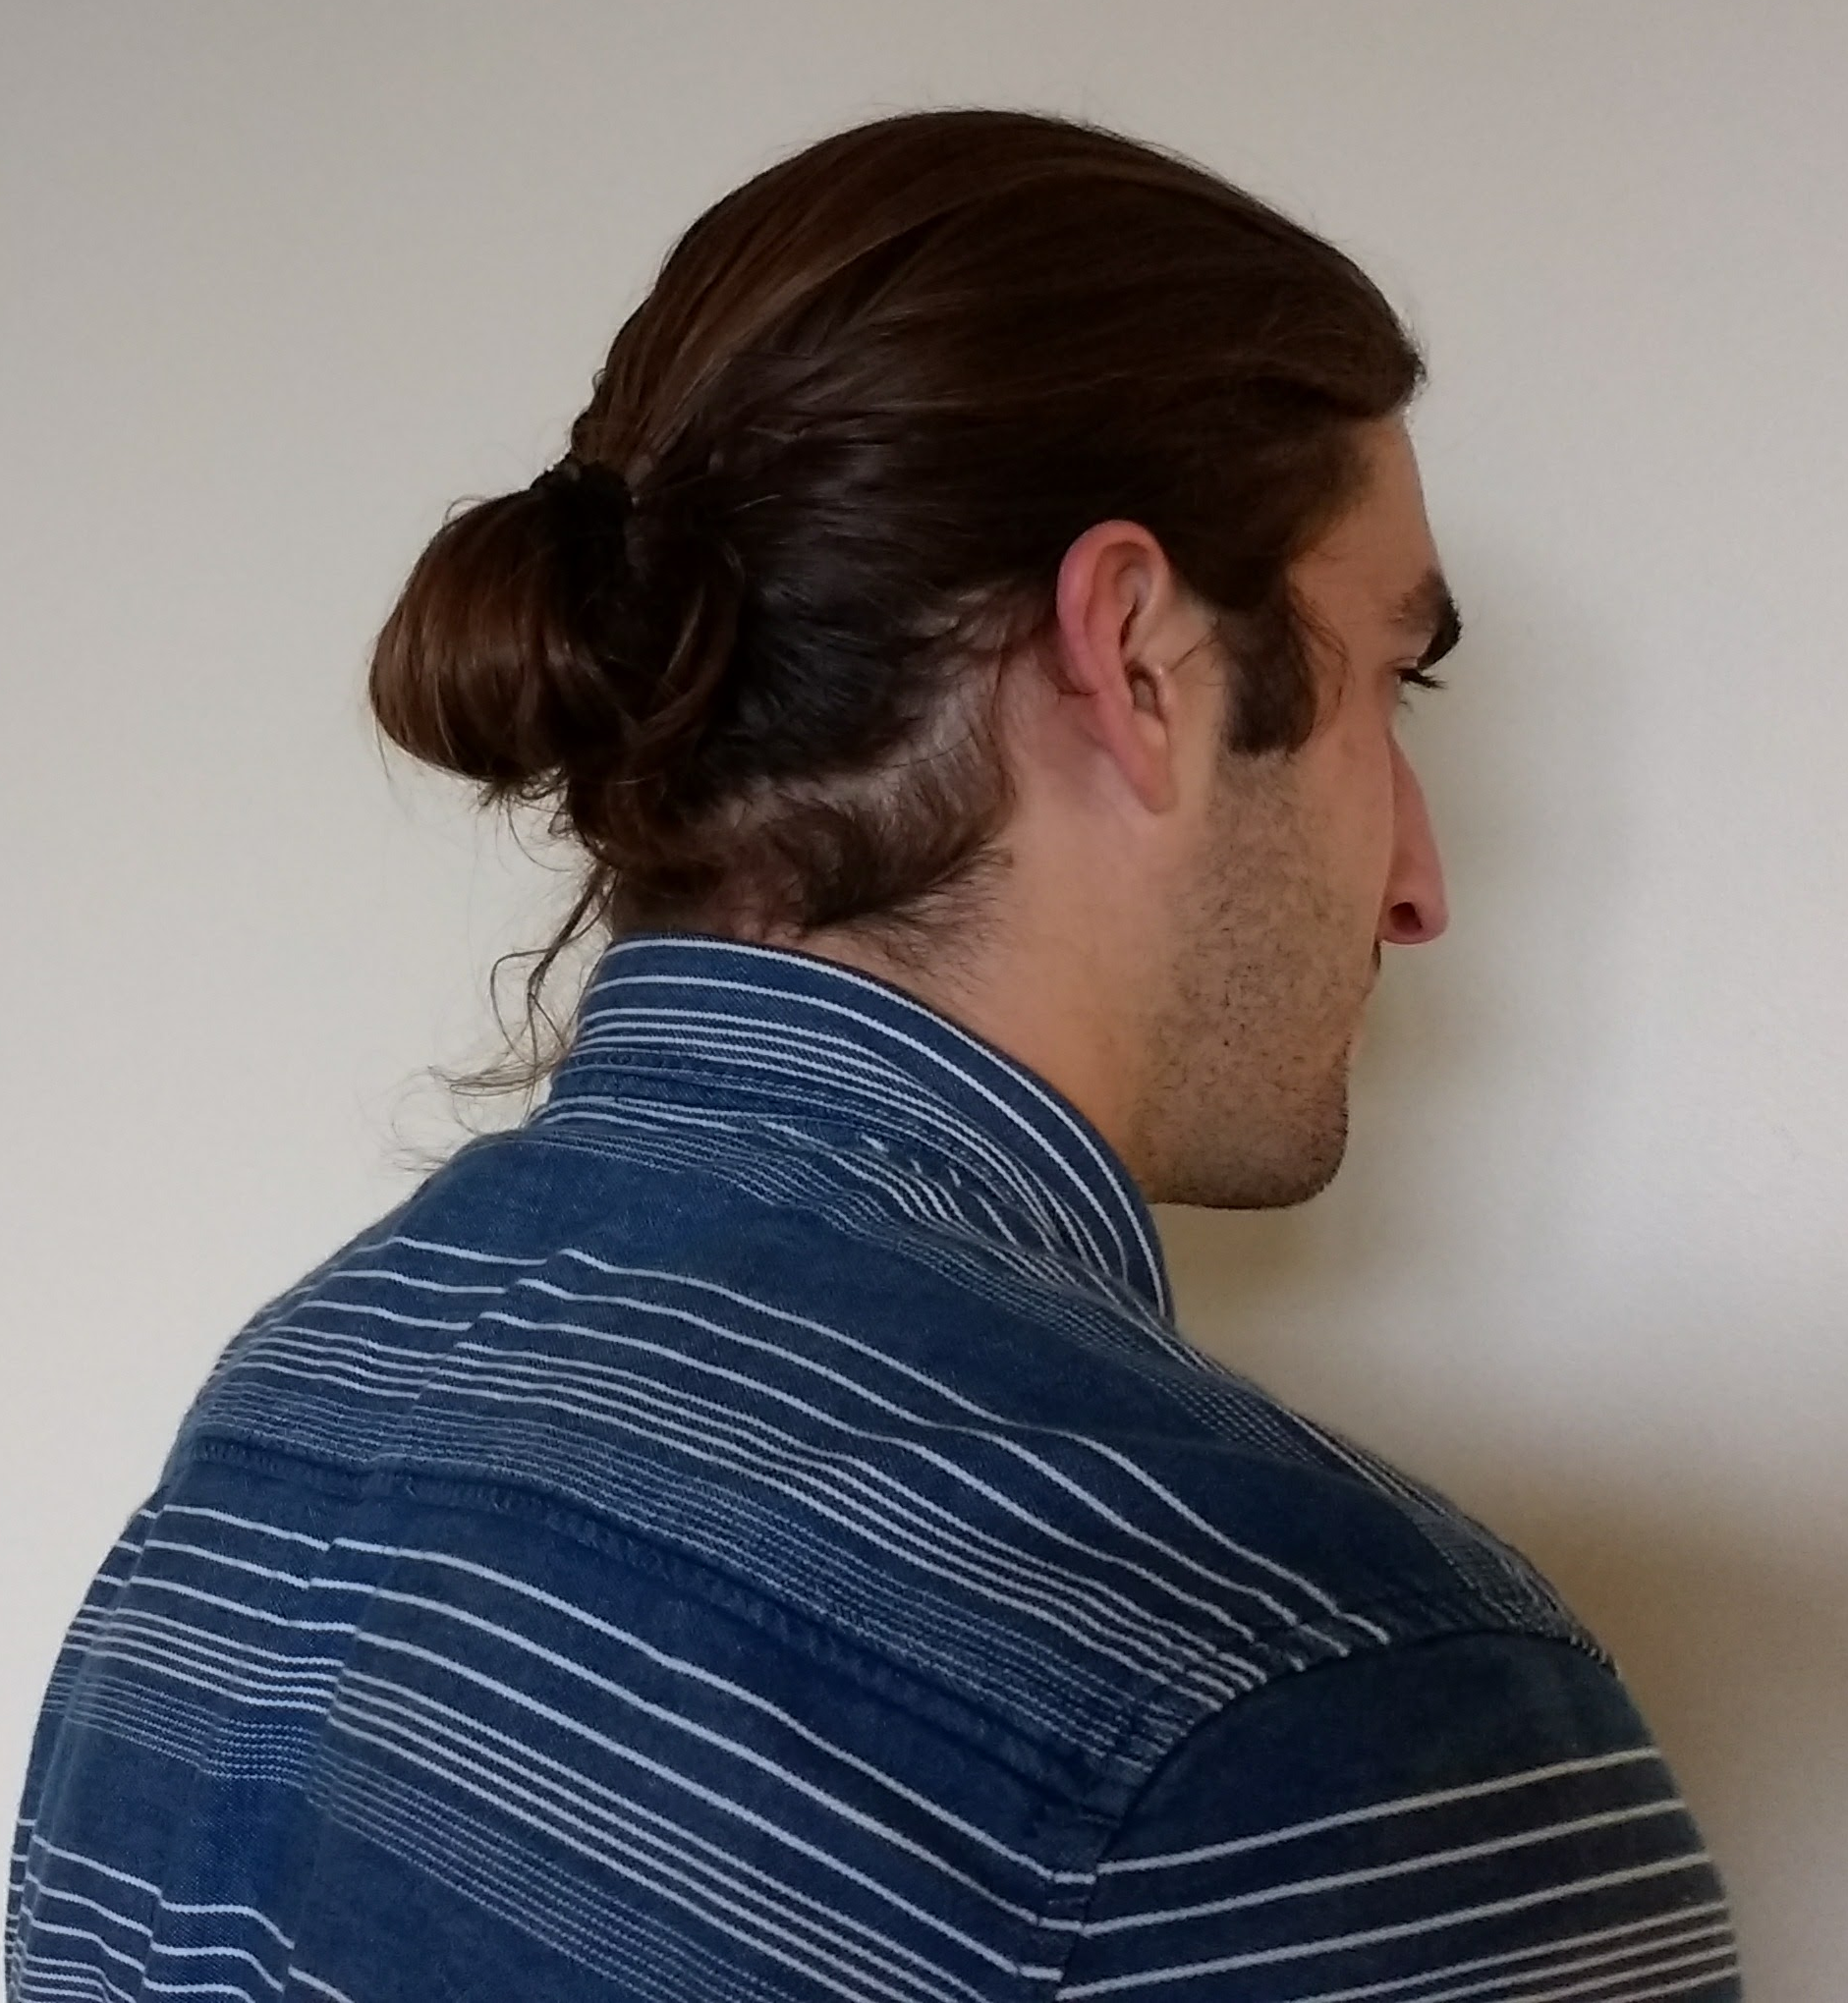 The man bun is an easy solution to getting all that hair out of the way.